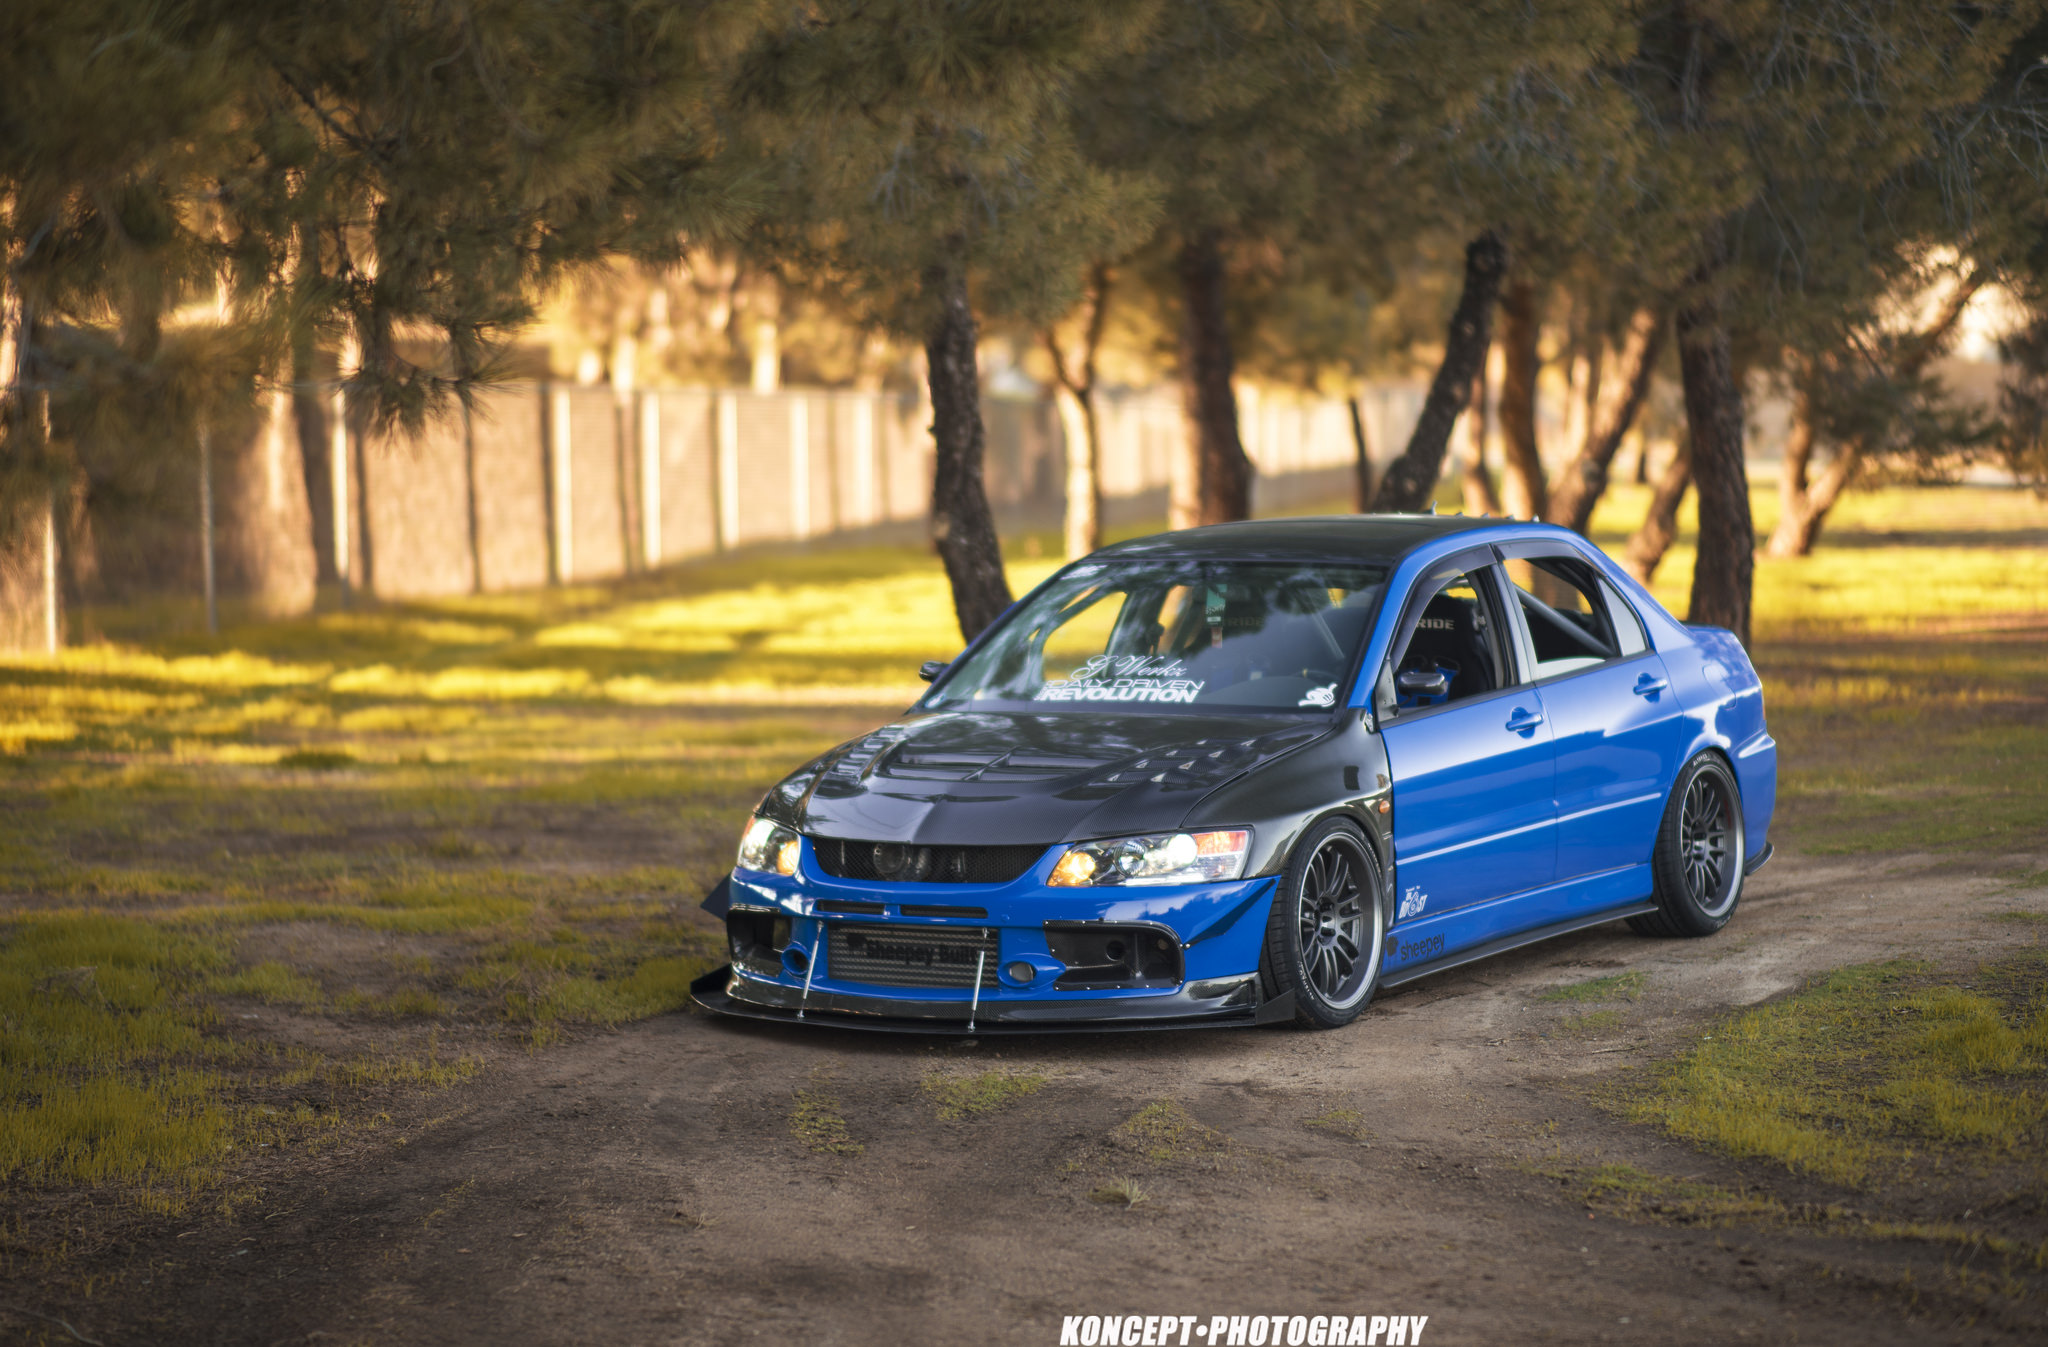 MPPSOCIETY rickey_g Mitsubishi EVO9 Volk Racing RE30 05